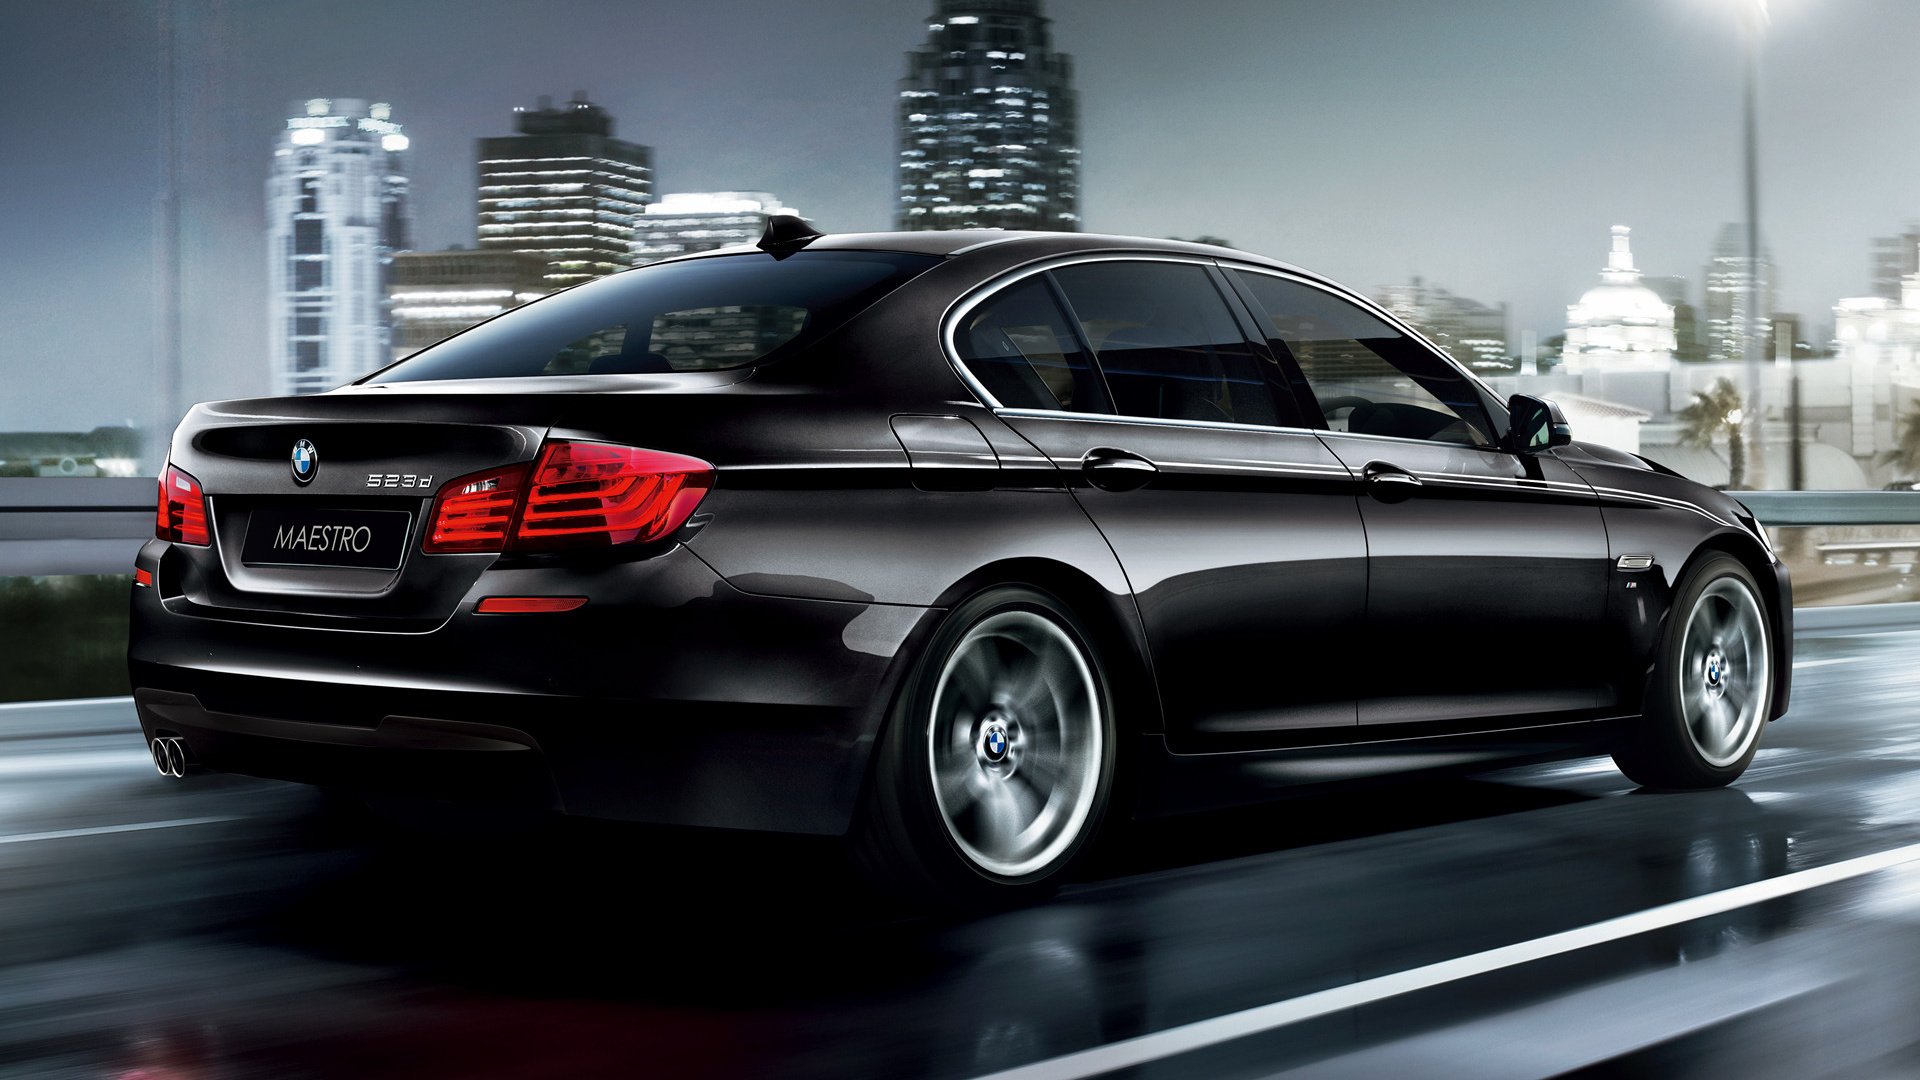 Dodge Ram 2015 >> 2015 BMW 5 Series Maestro (JP) - Wallpapers and HD Images ...